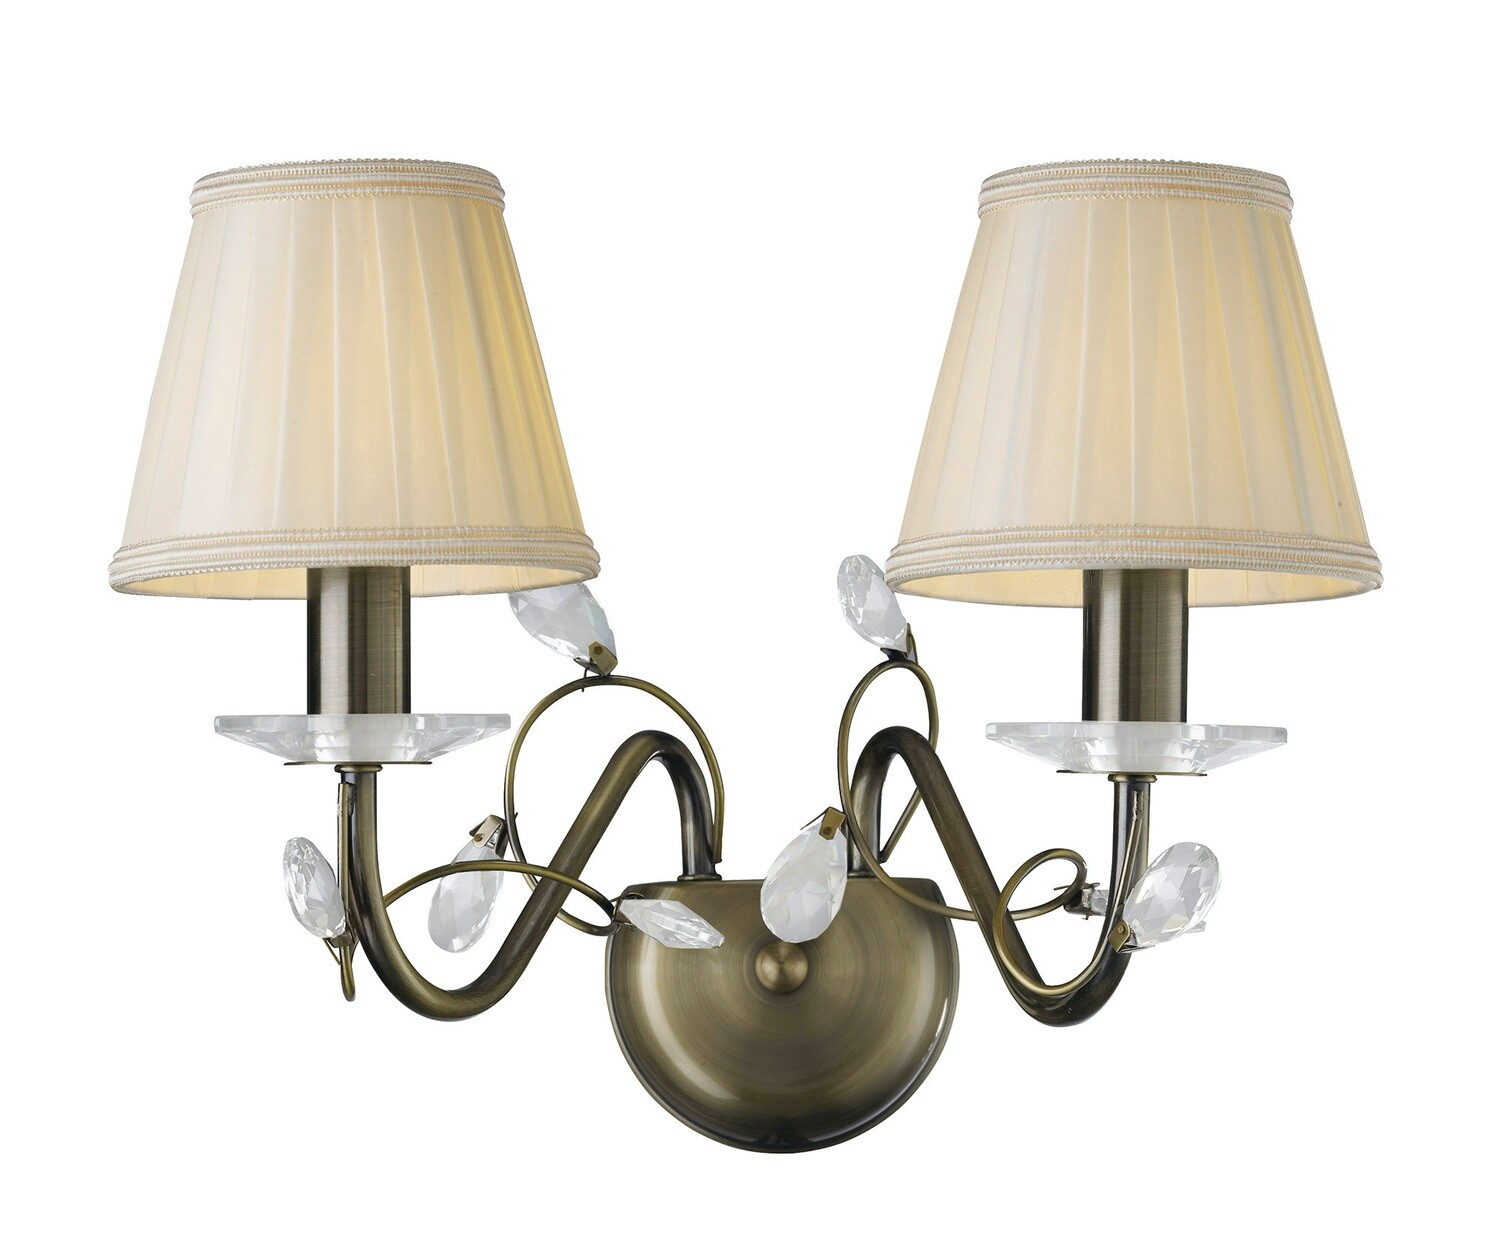 Willow Wall Lamp WITH SHADE 2 Light E14 Antique Brass/Crystal